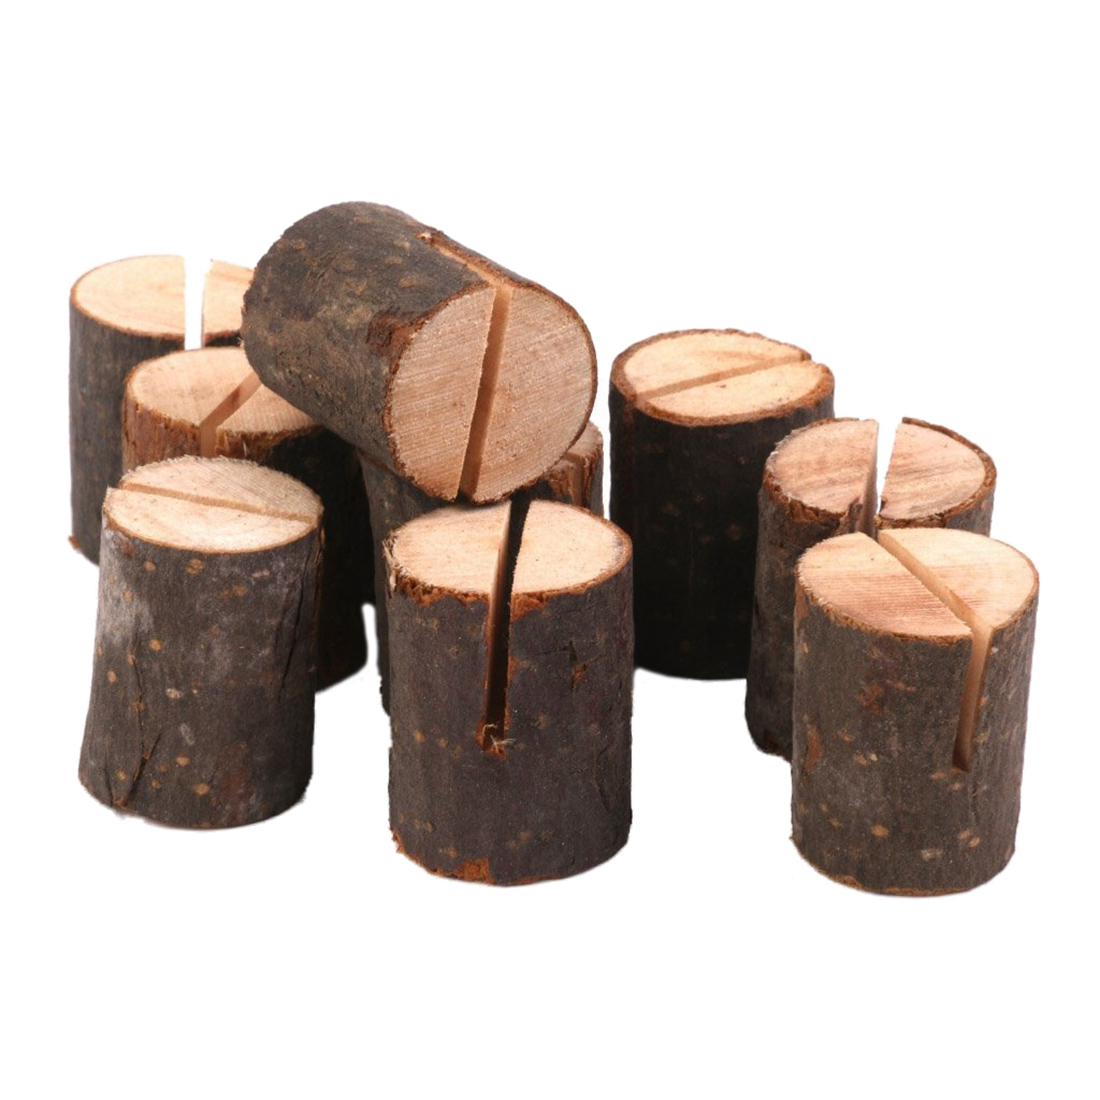 10pcs Wooden Wedding Name Place Card Holders Home Decor